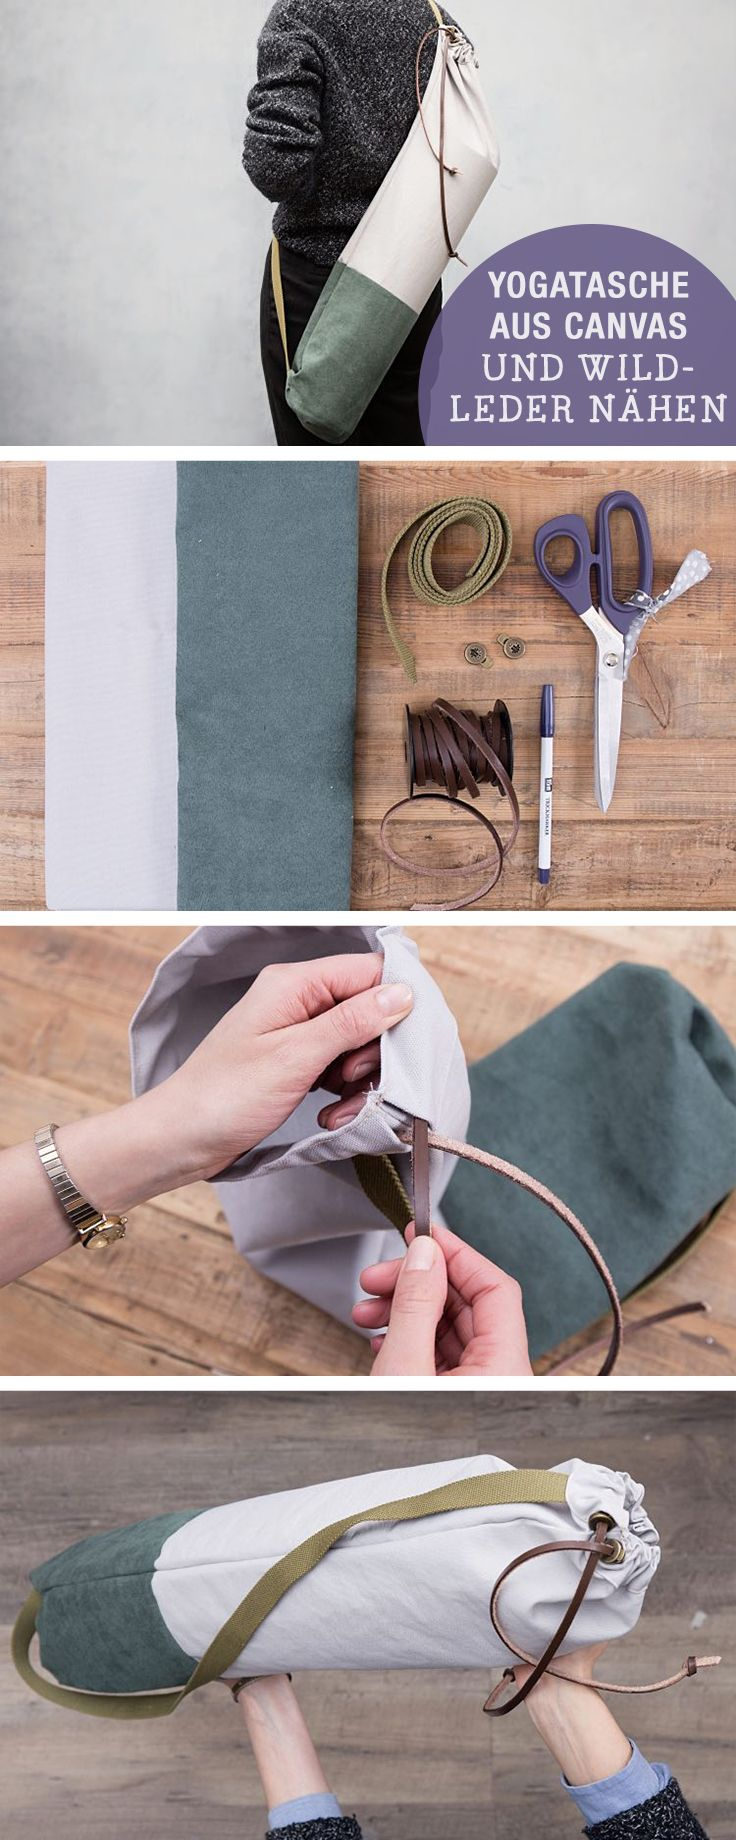 Nähanleitung: Yogatasche nähen, Canvas und Leder Materialien / diy sewing tutorial: how to sew a yoga bag, leather via DaWanda.com